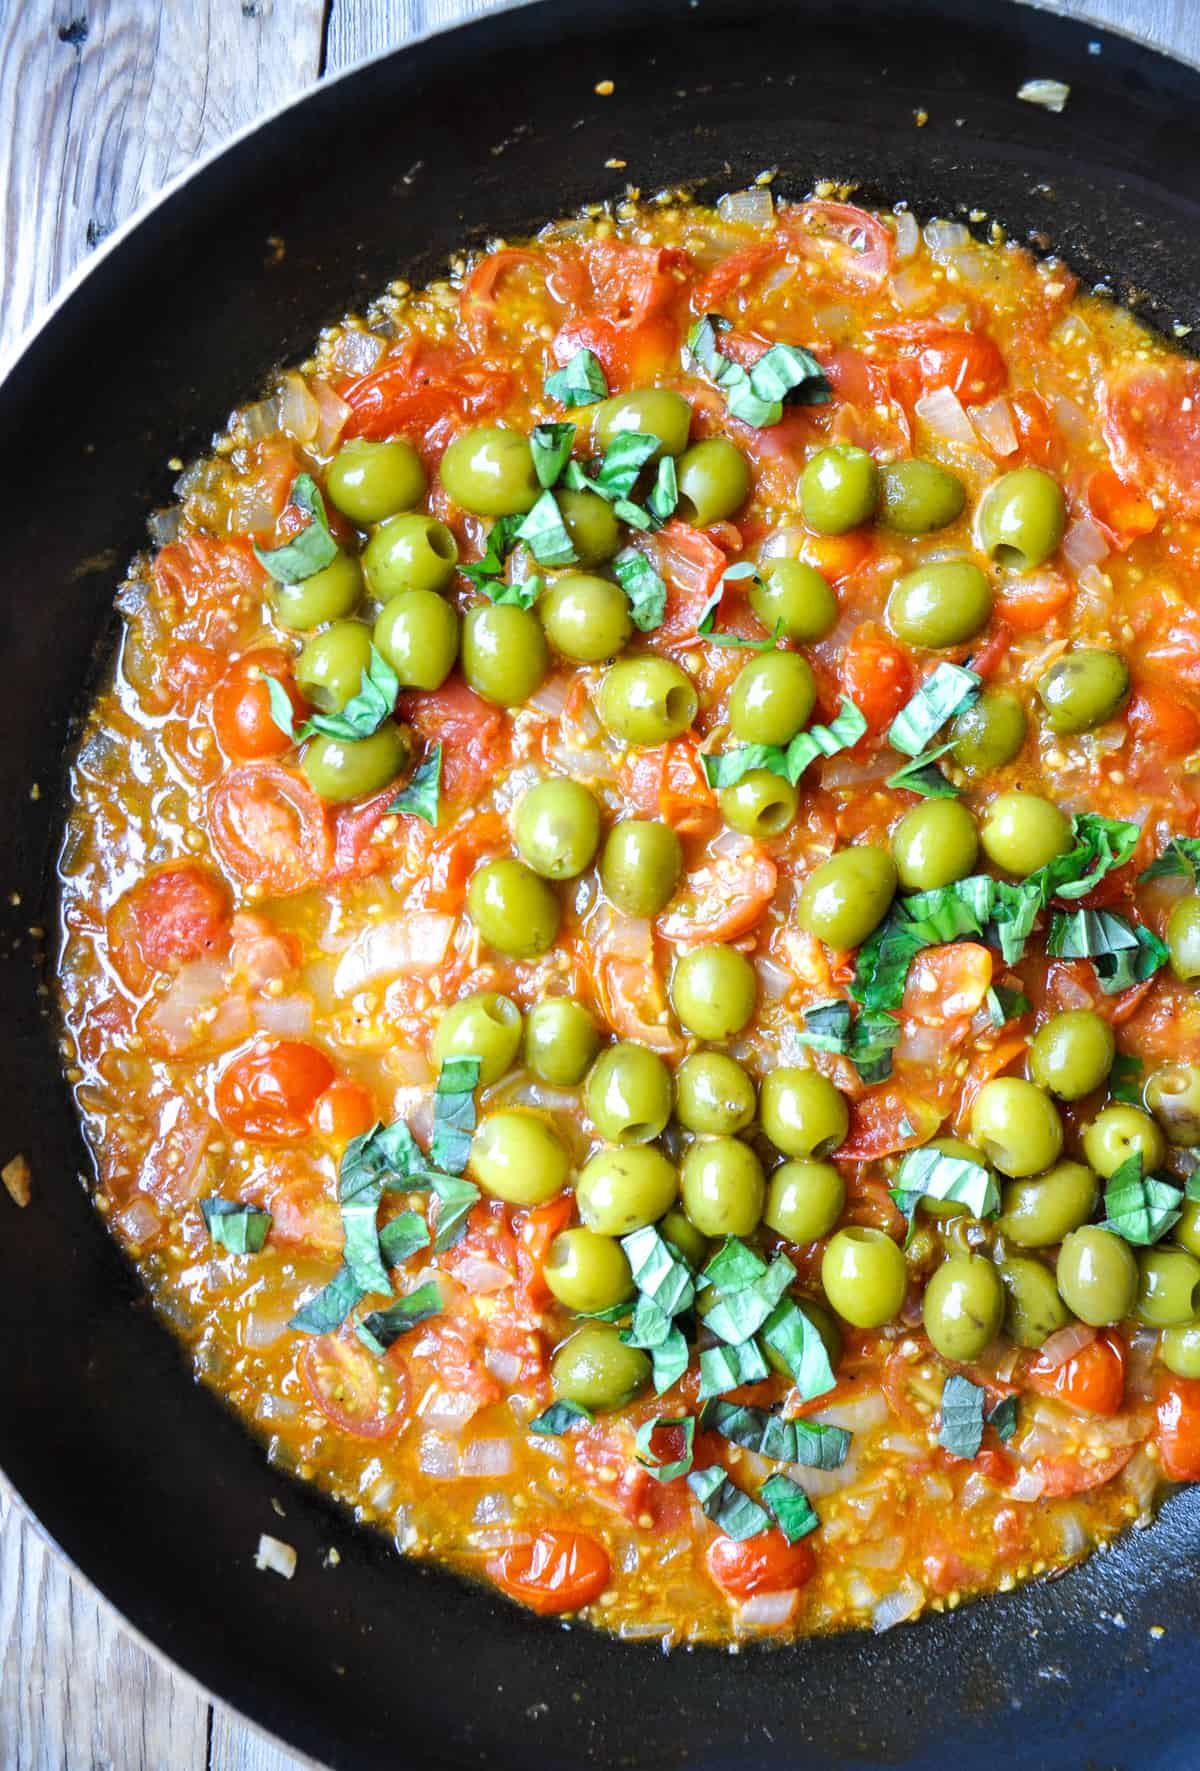 Add in green olives and fresh, chopped basil